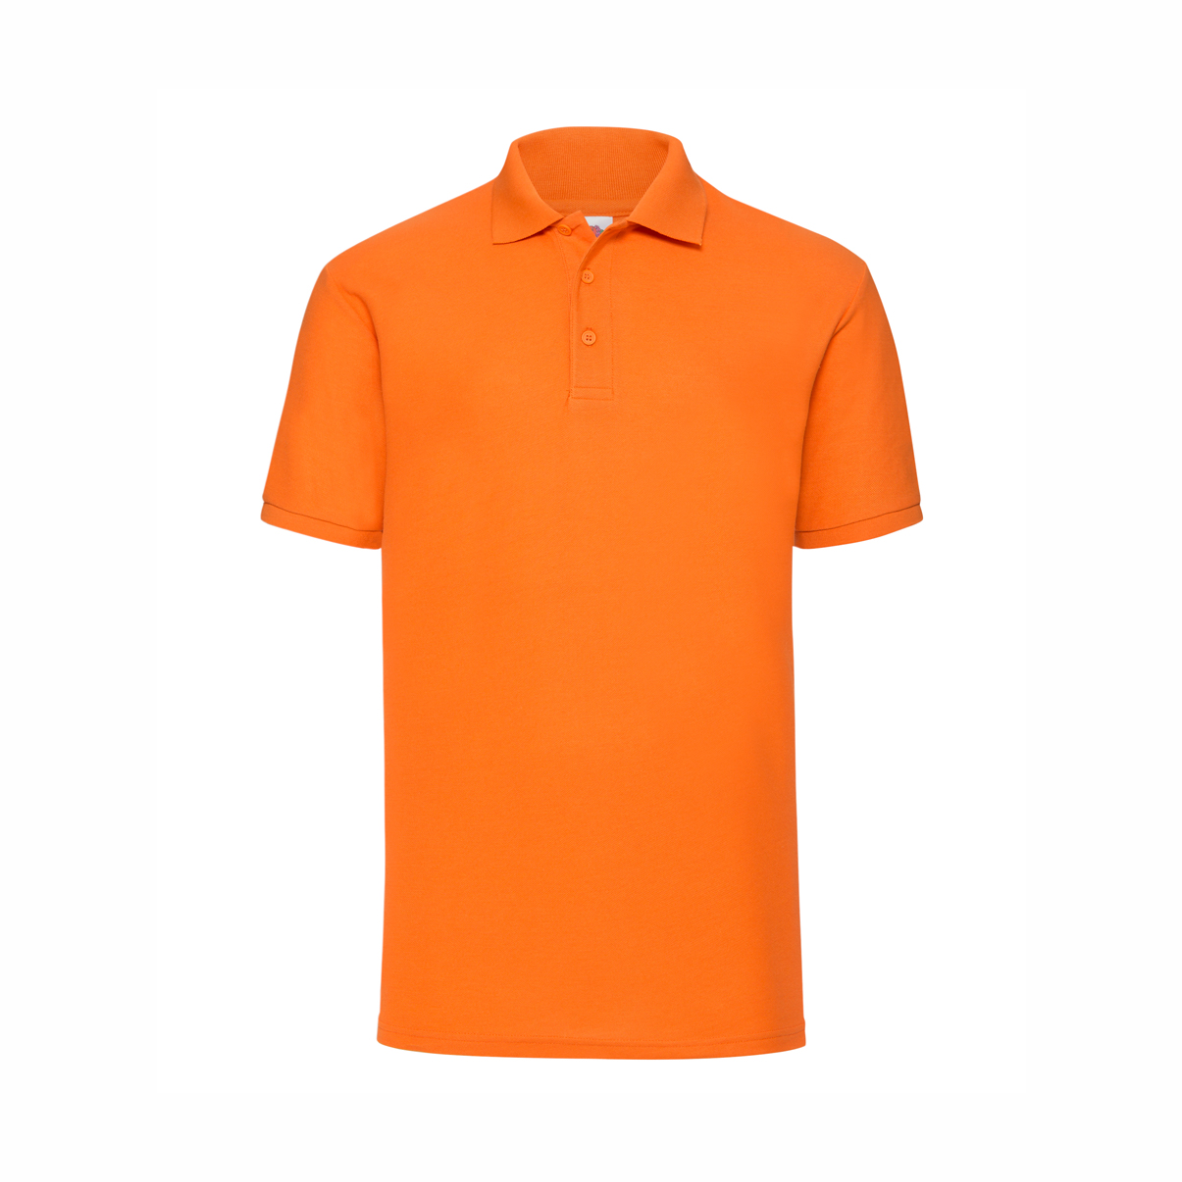 Orange Polo Shirts — Red-Penguin | Sign Shop, Print Shop, Workwear & Logo Embroidery